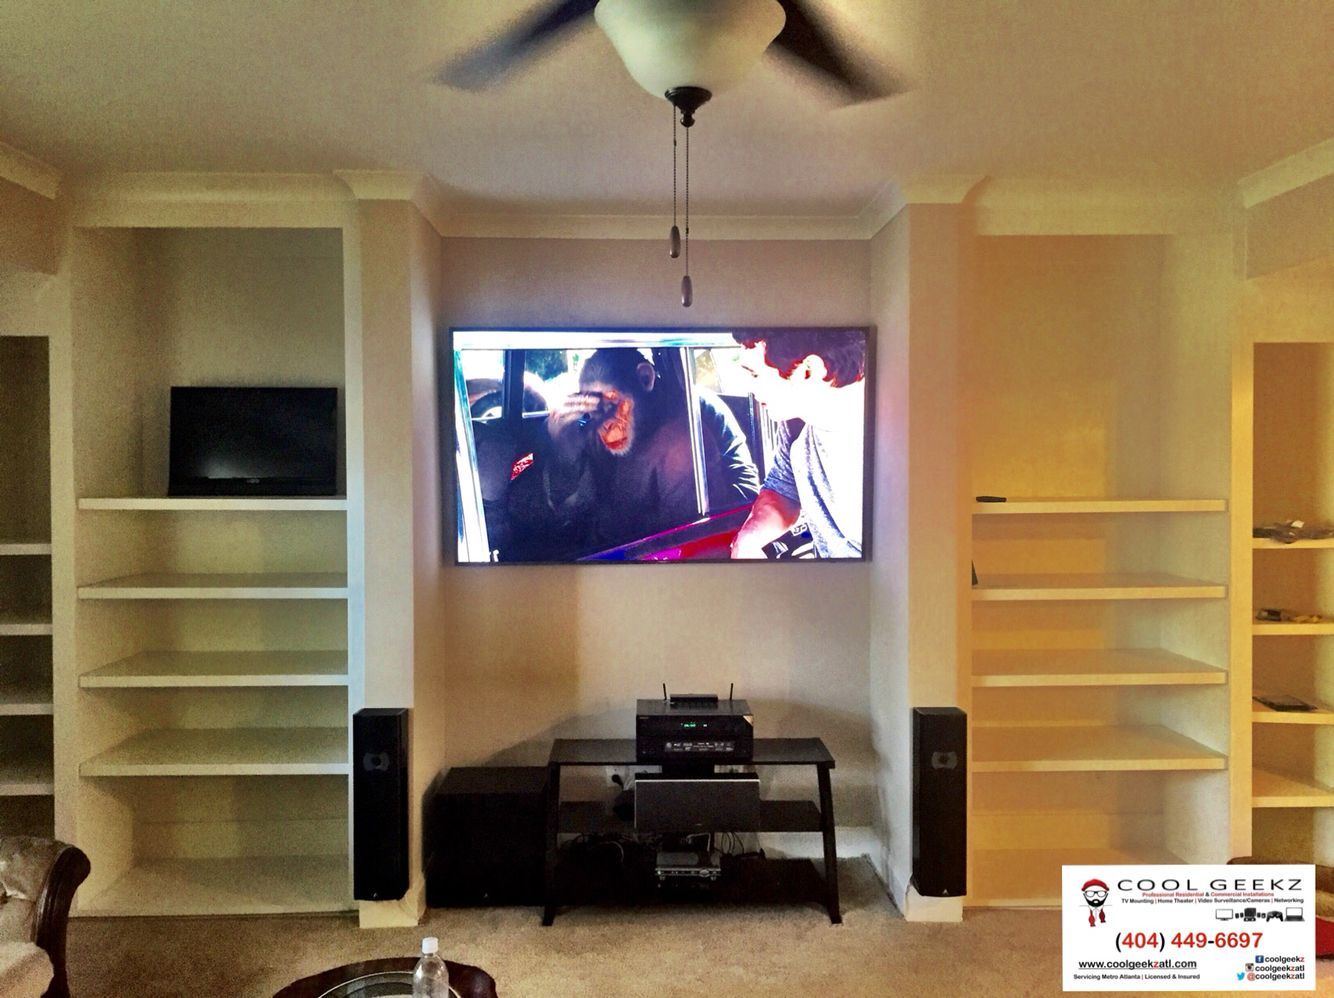 medium resolution of full home theater setup done 75 4k tv onkyo receiver atlantic tech speakers and a monster subwoofer